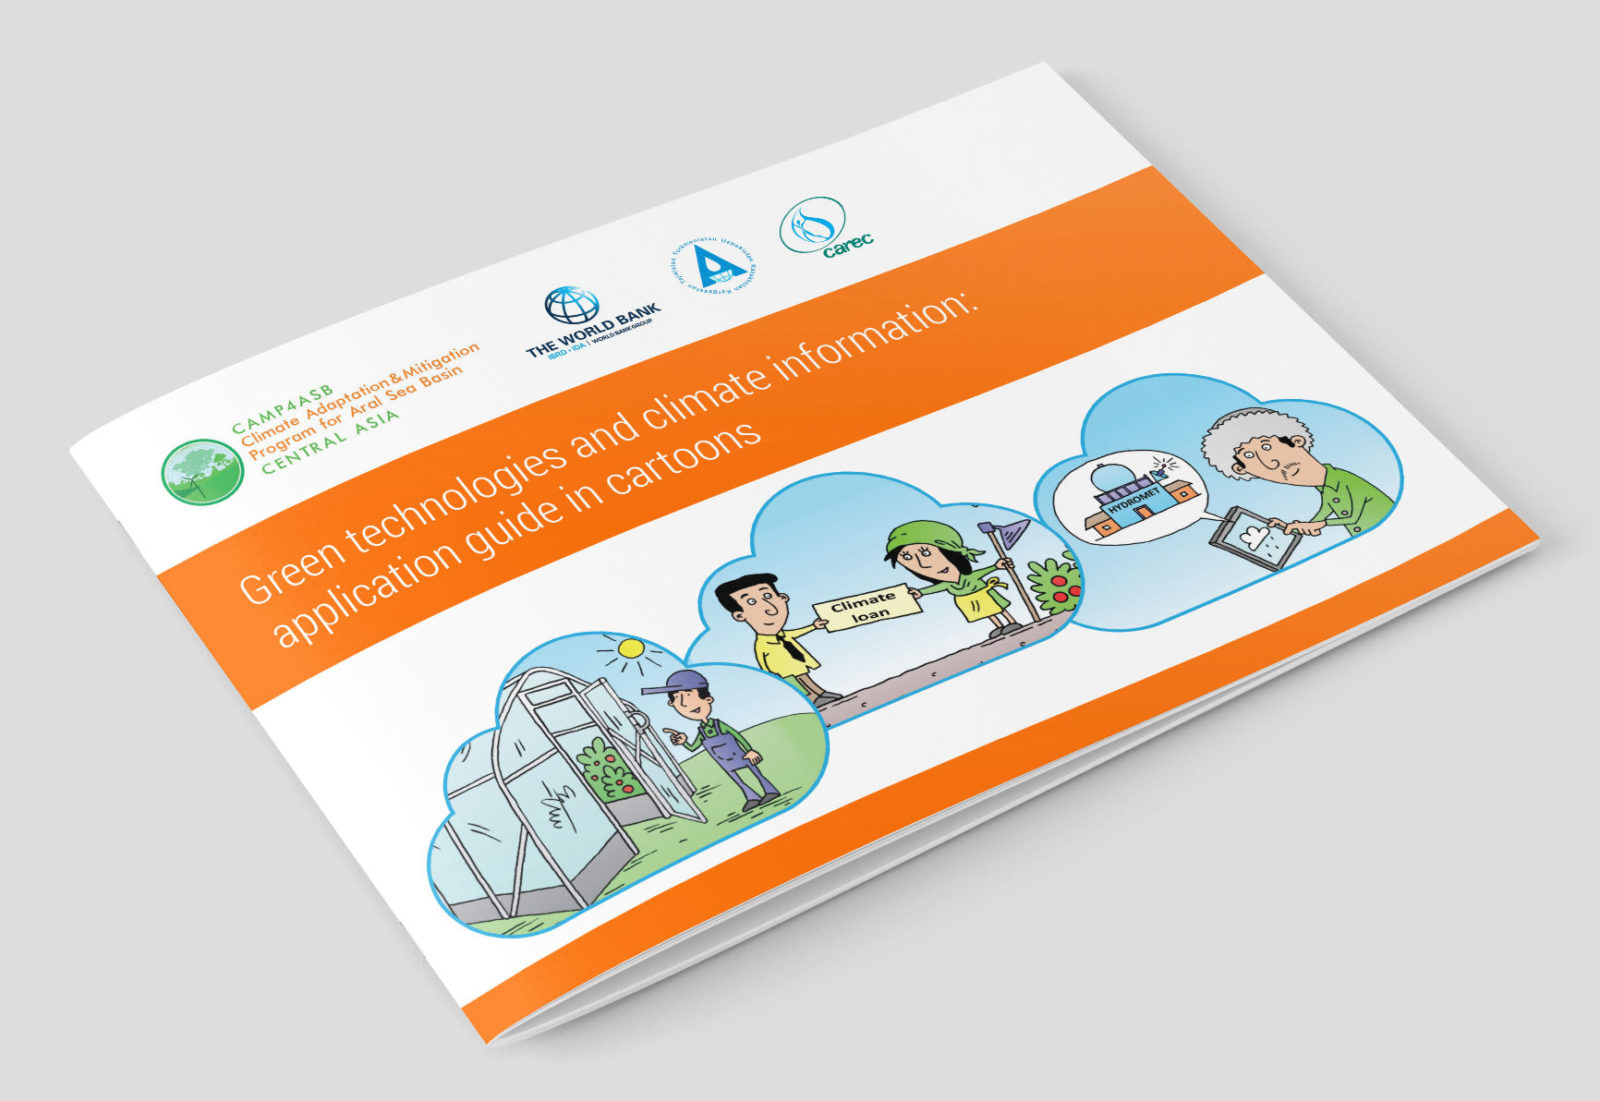 Green technologies and climate information: application guide in cartoons